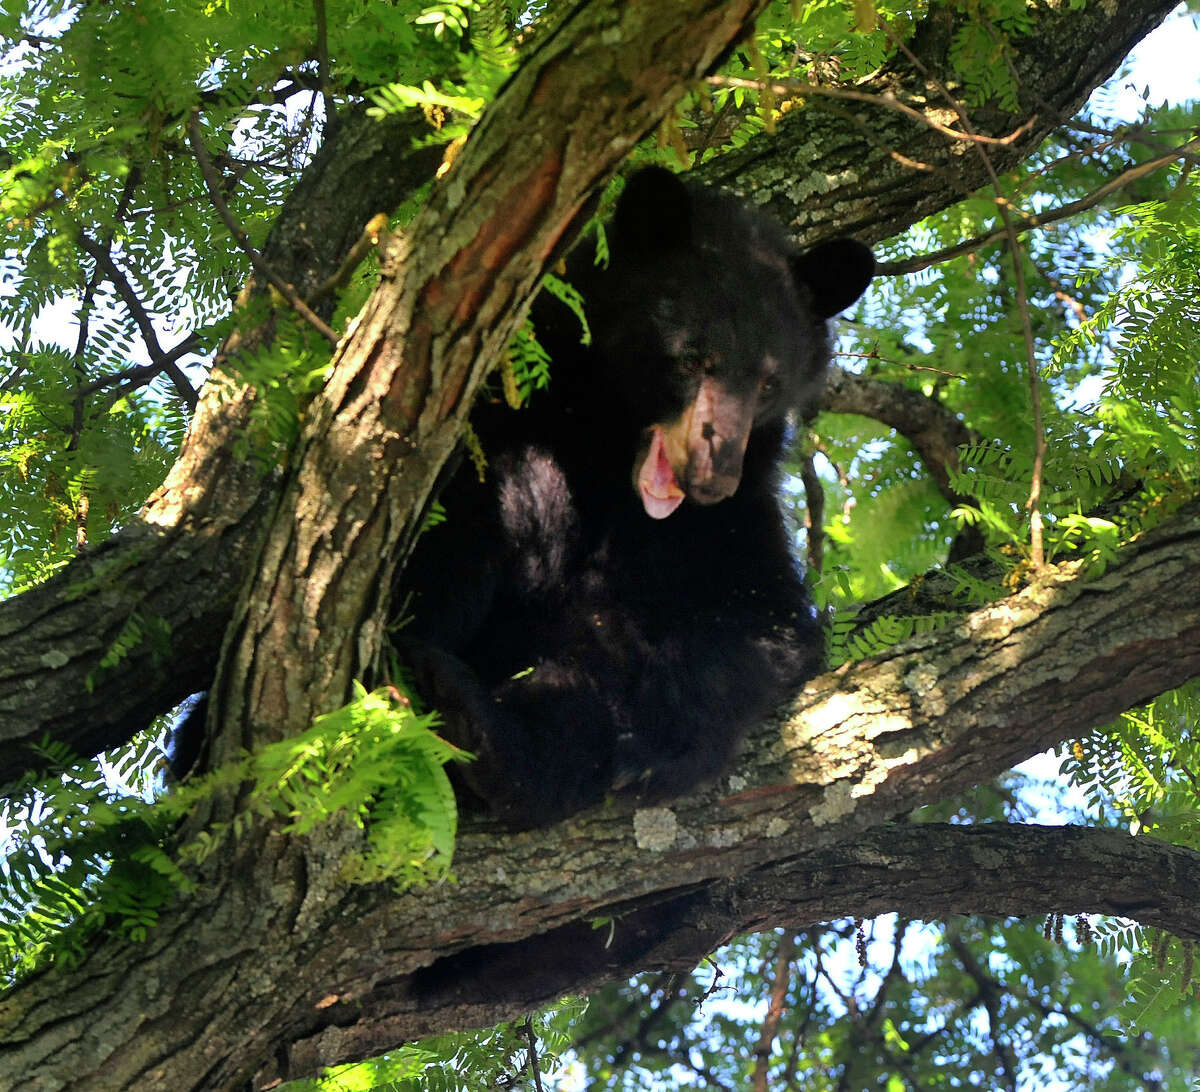 A 250 pound black bear is discovered in a tree along West Wooster Street in Danbury, Conn. Tuesday, June 4, 2013. Department of Energy and Enviormental Protection workers tranquilized him and he dropped into a net set up by the Danbury Fire Dept.